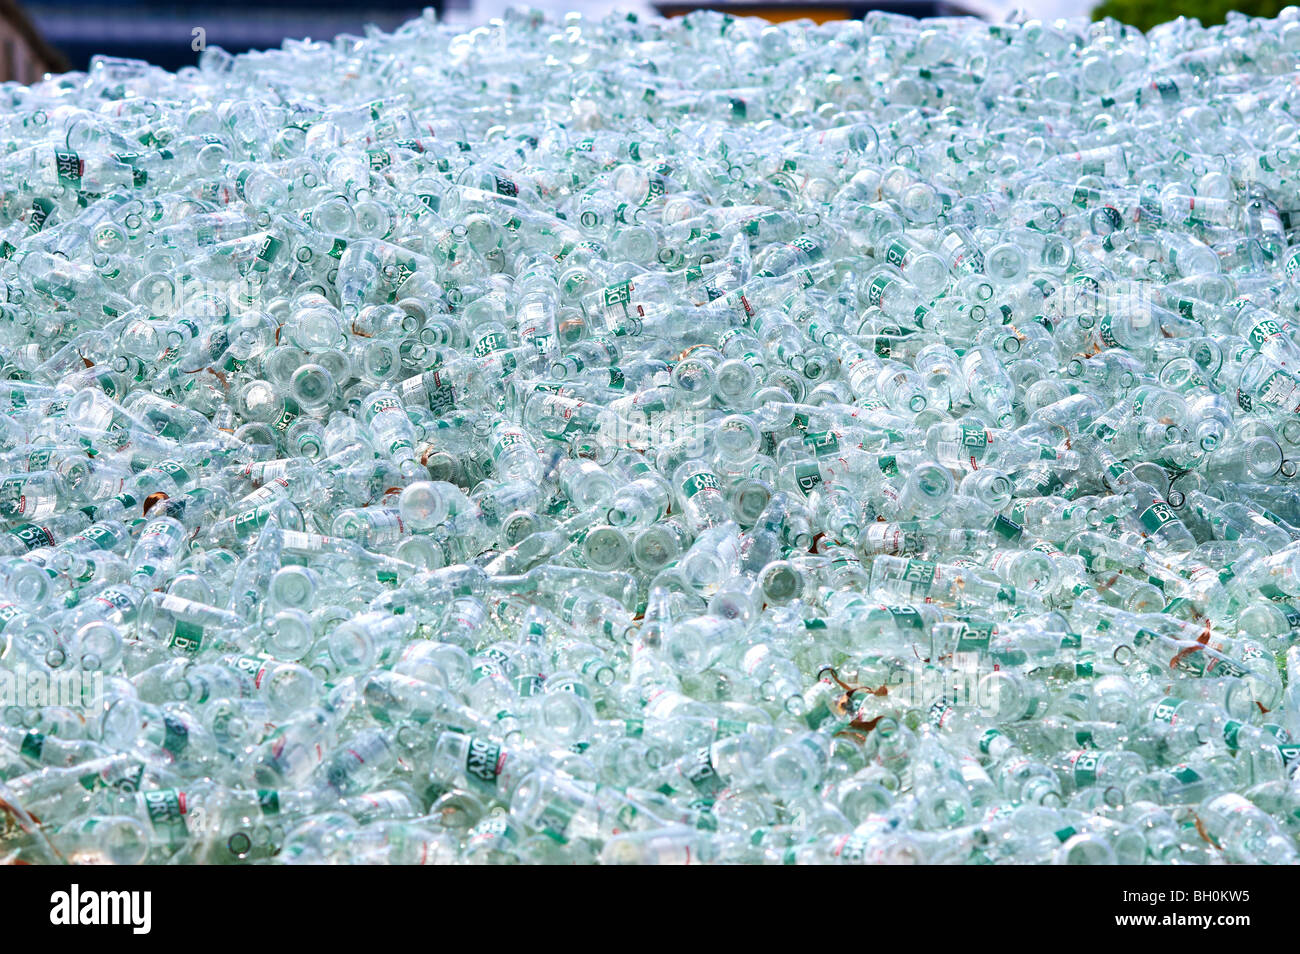 Glass recycling plant - Stock Image